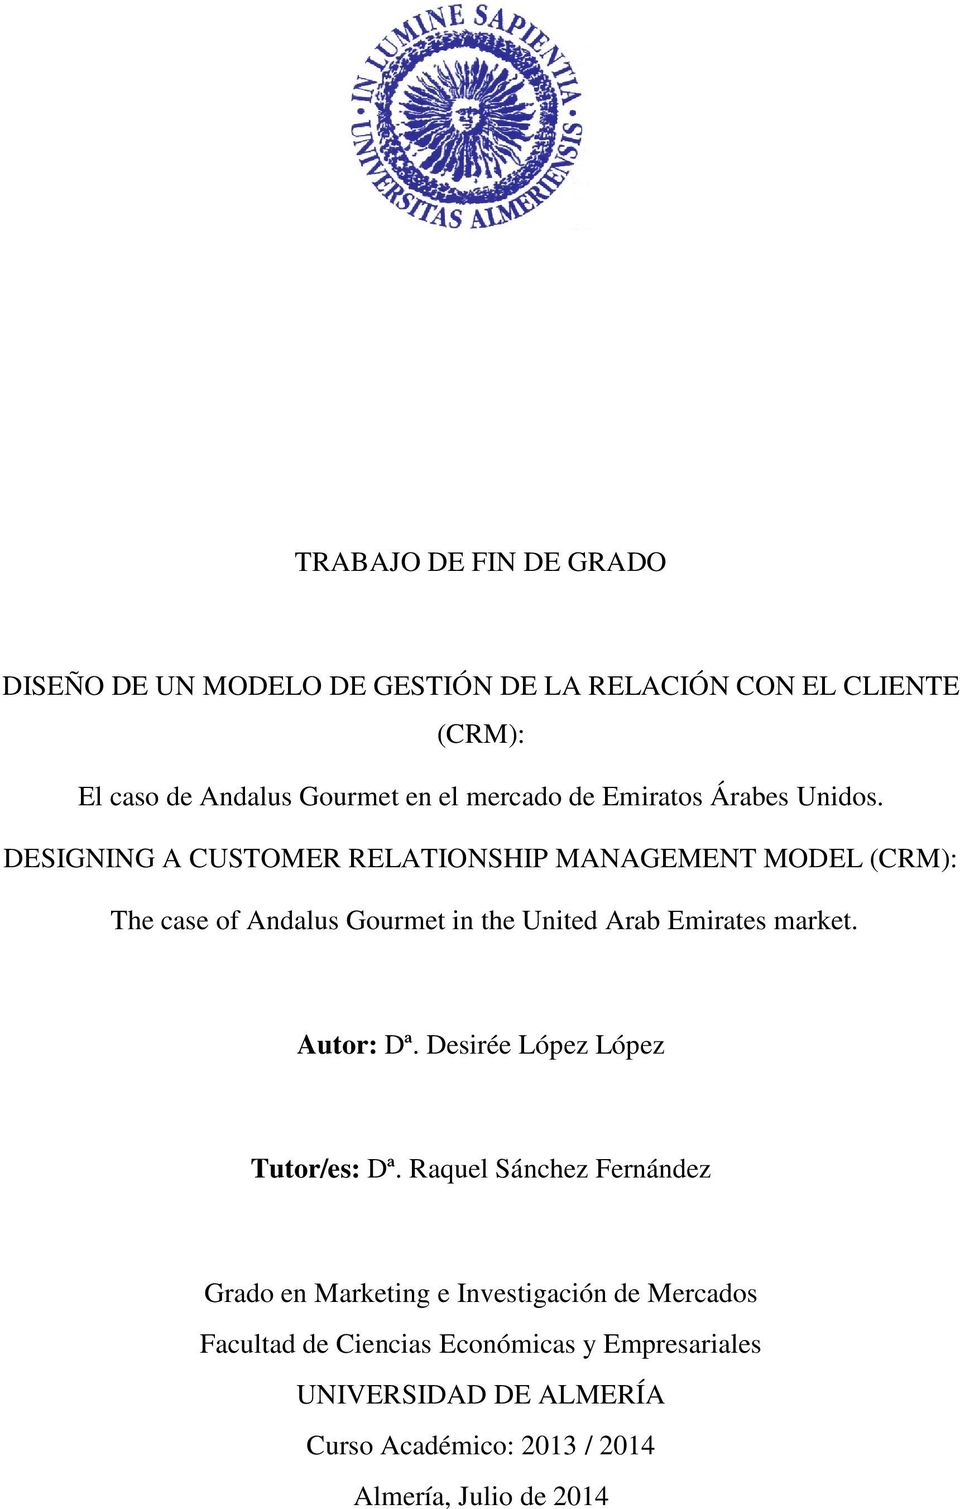 DESIGNING A CUSTOMER RELATIONSHIP MANAGEMENT MODEL (CRM): The case of Andalus Gourmet in the United Arab Emirates market.